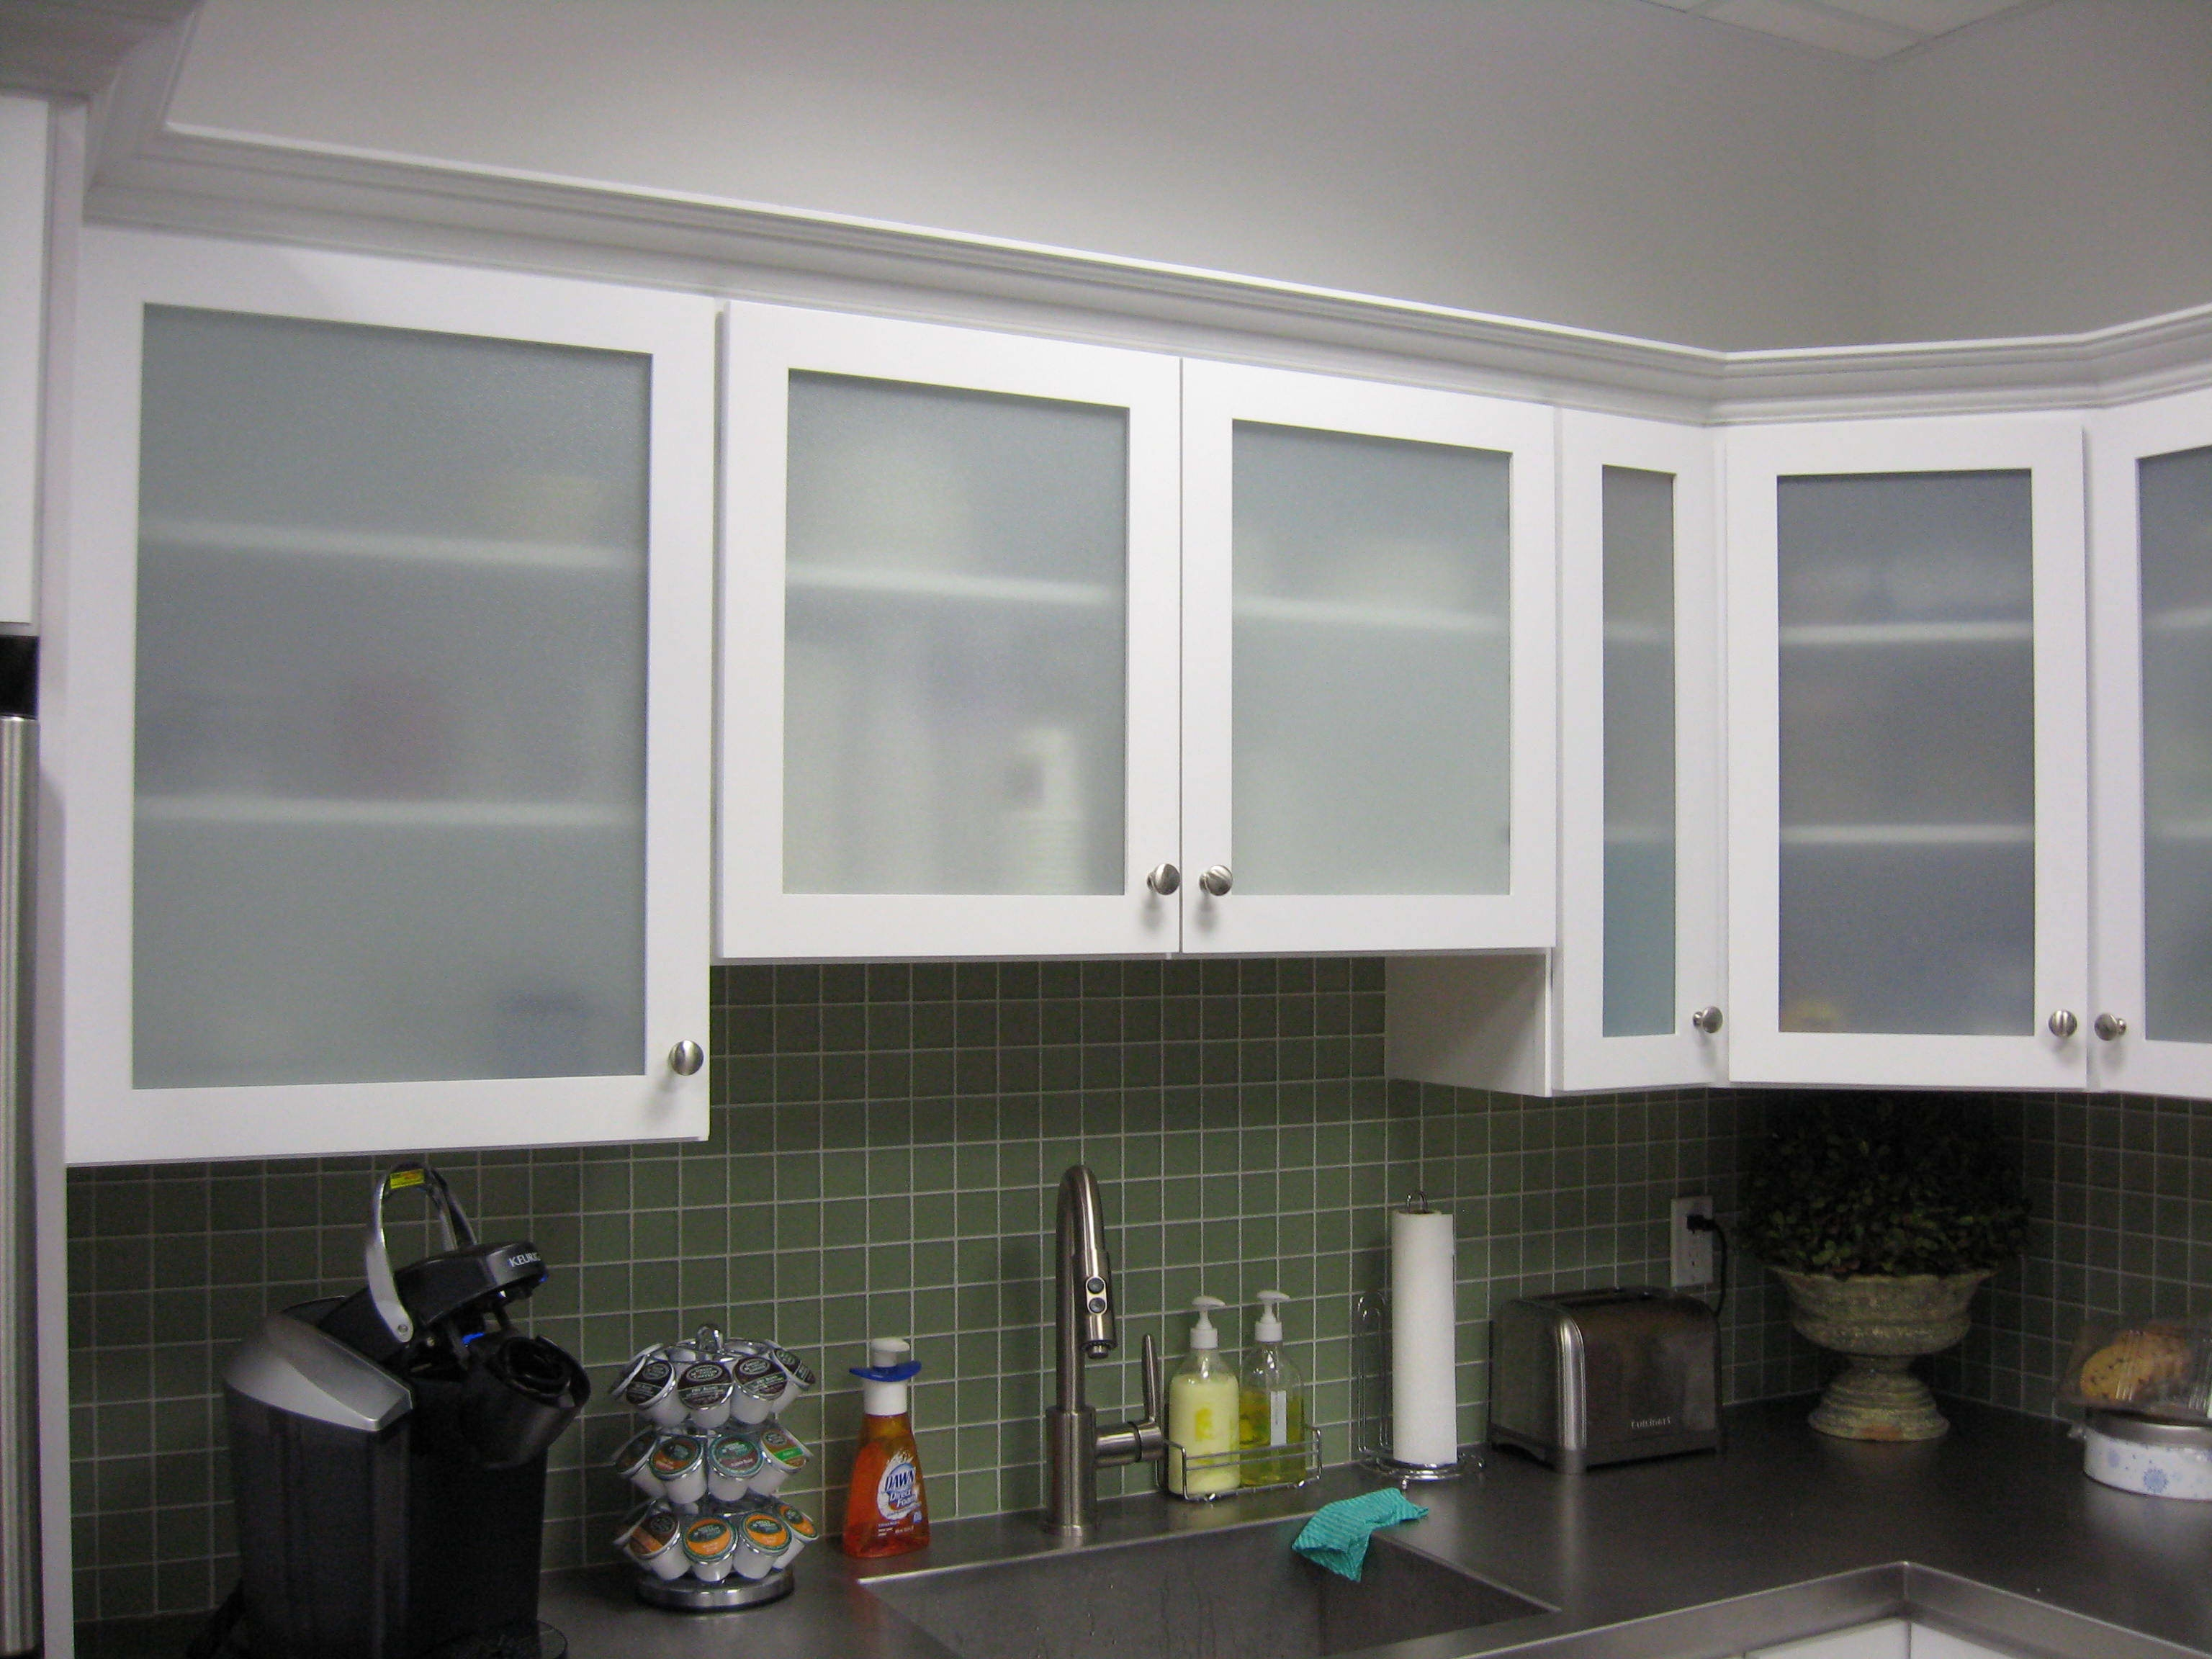 Kitchen Design Modern Range Cooktop Brown Full Kitchen Cabinet Within Glass Kitchen Shelves (Image 7 of 15)